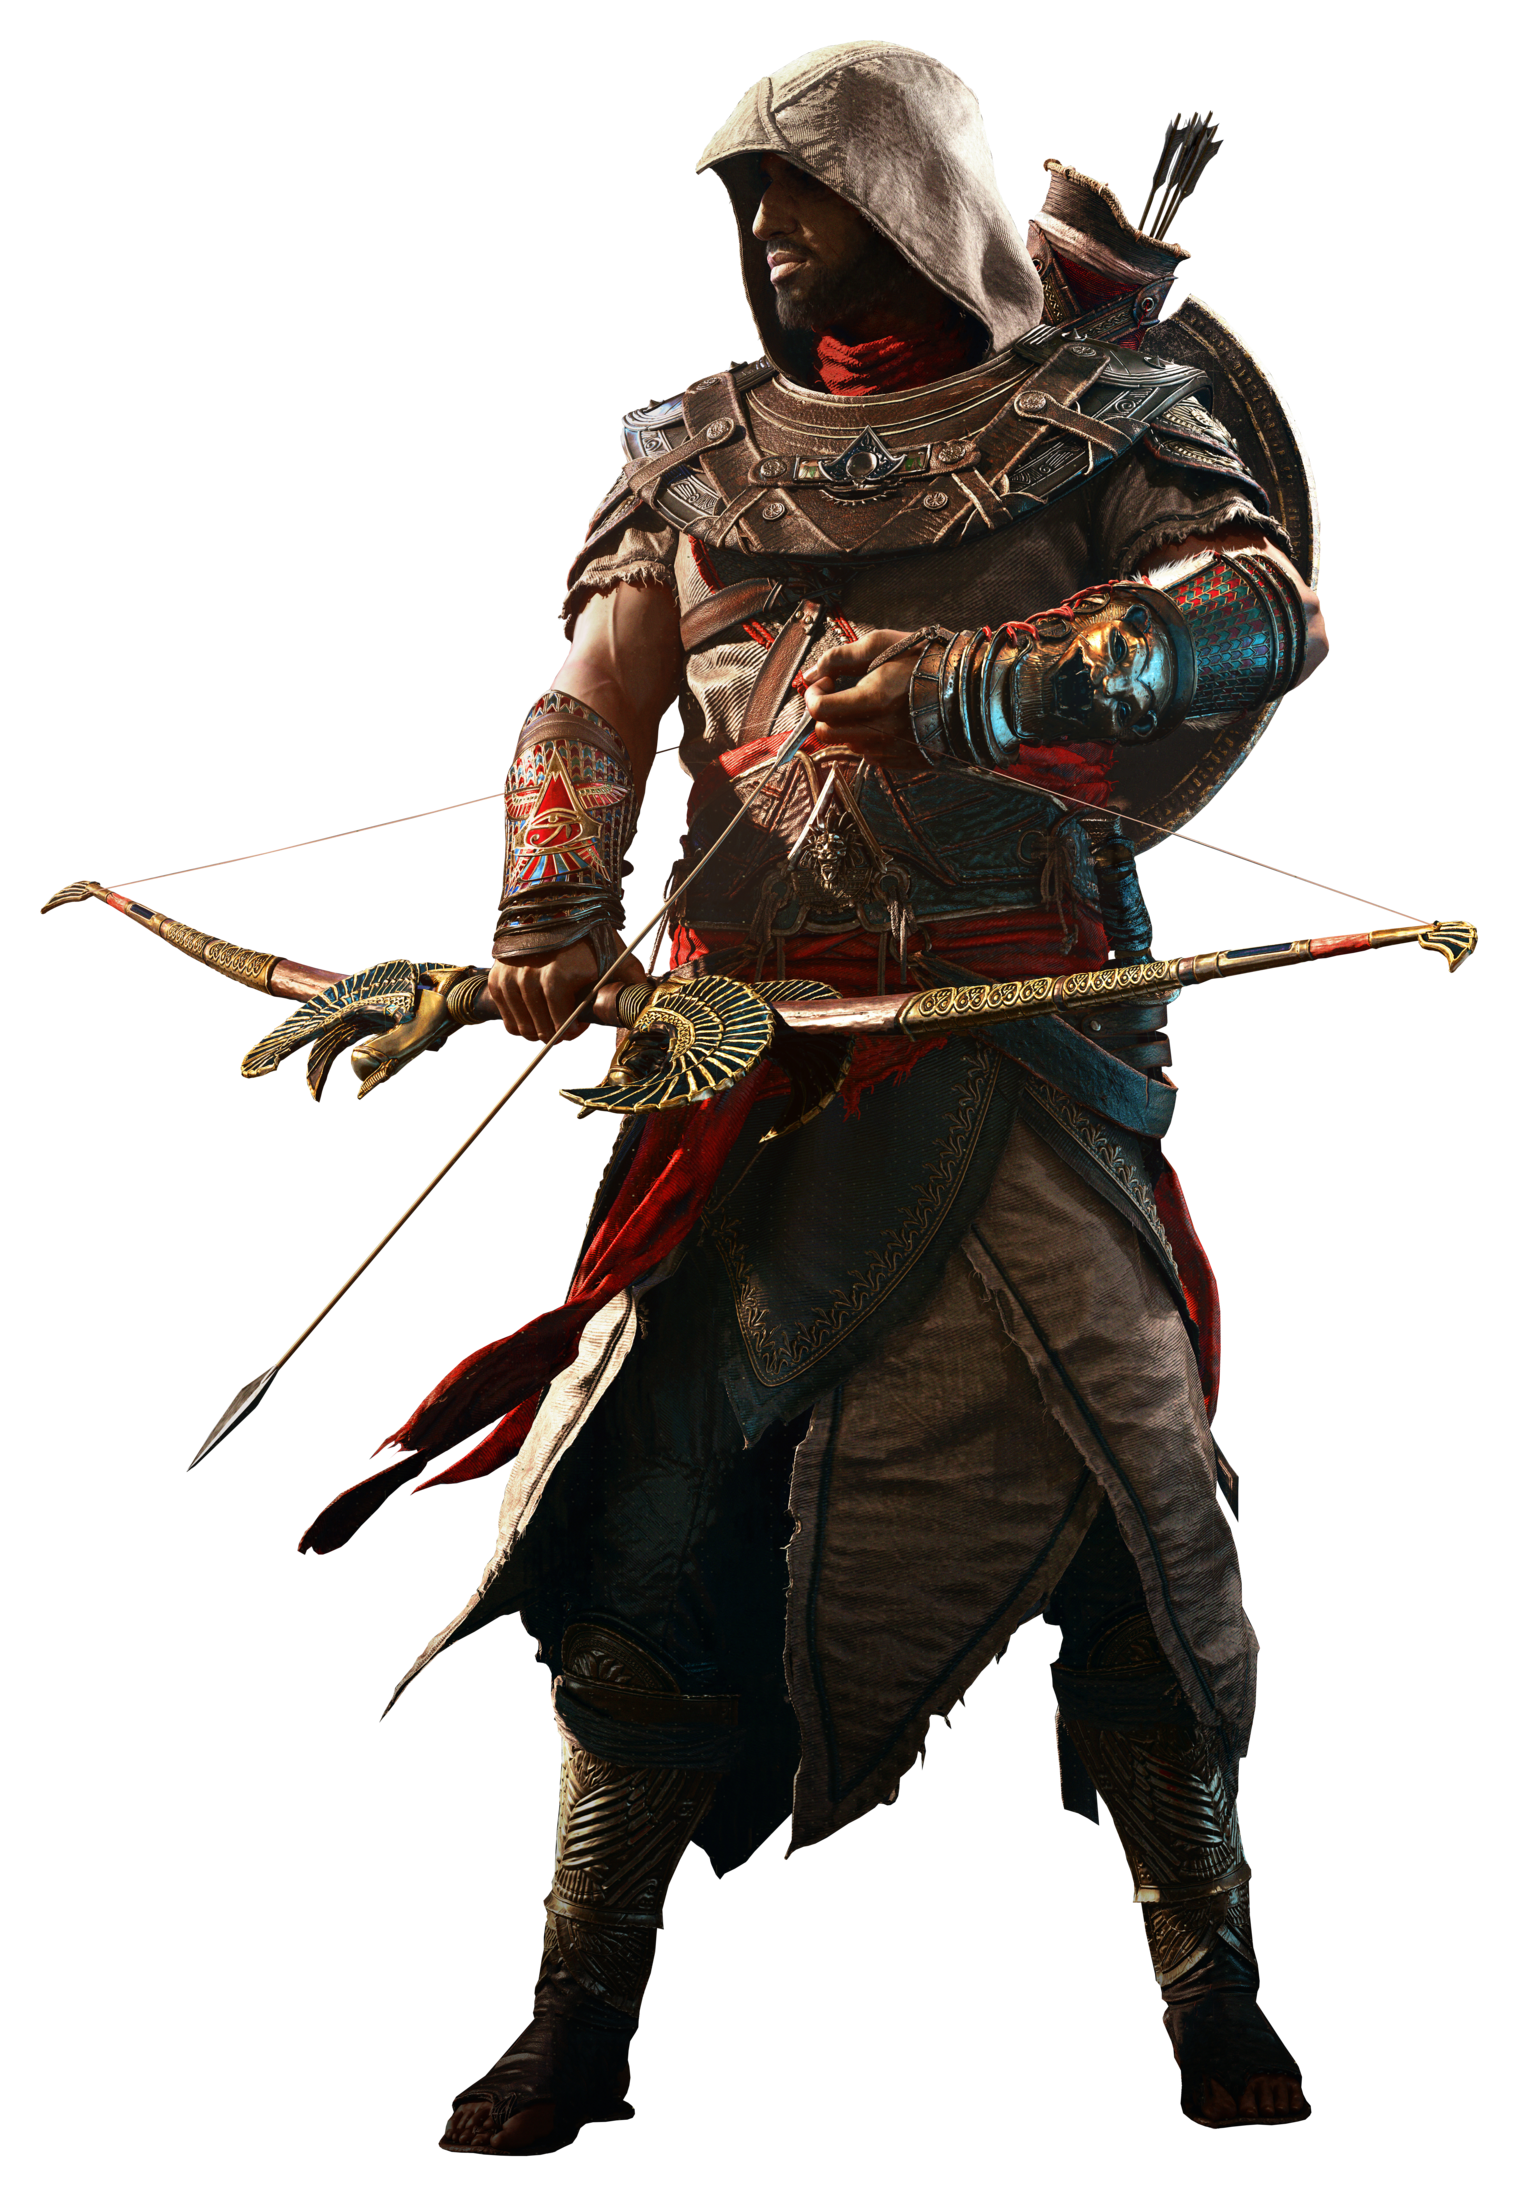 Bayek Of Siwa Born C 85 Bce Was One Of The Last Medjay Of Egypt And Alongside His Wife Assassins Creed Artwork Assassin S Creed Assassin S Creed Wallpaper